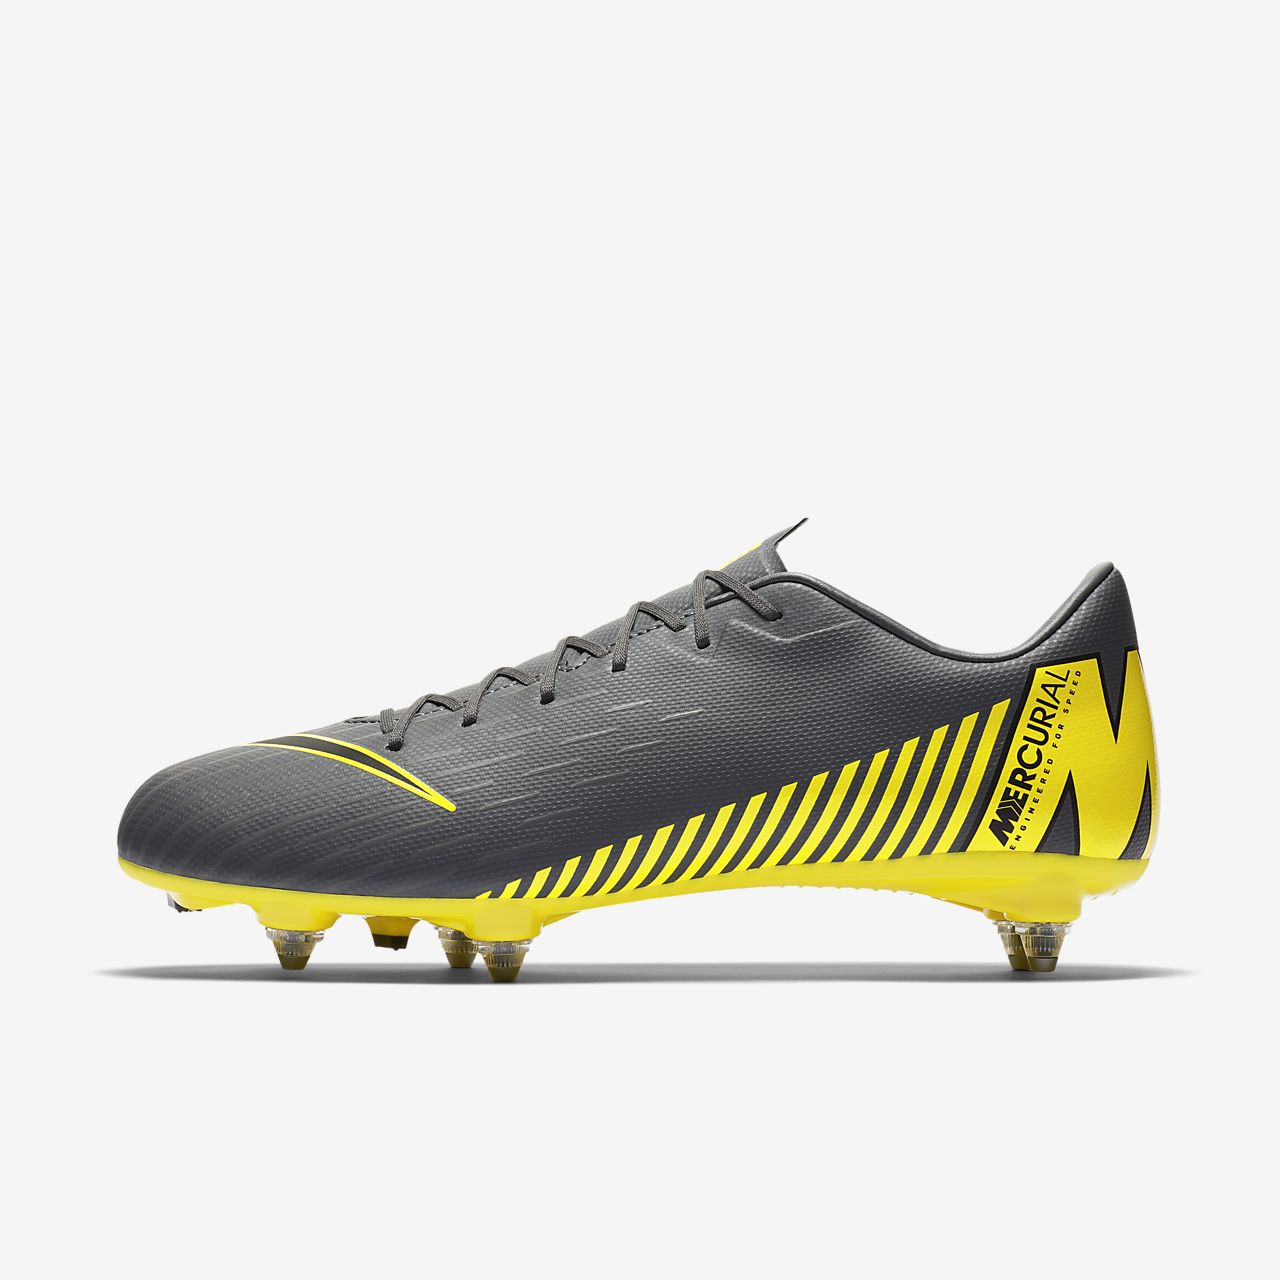 39191b305840 Nike Mercurial Vapor XII Academy SG-PRO Soft-Ground Football Boot ...